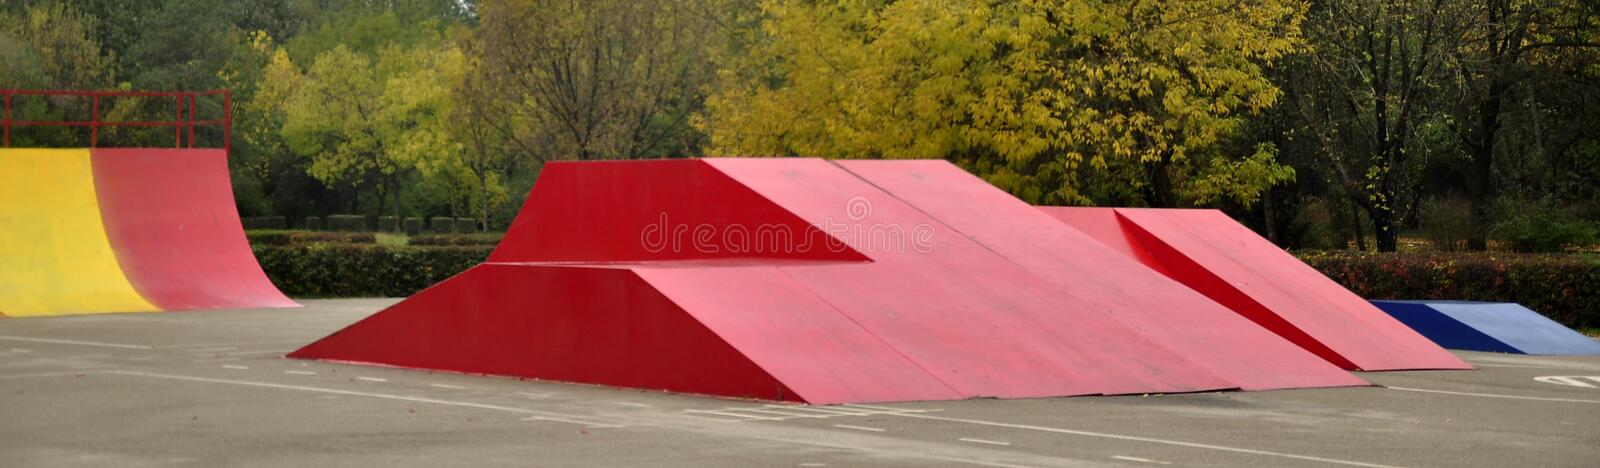 Colored skate ramps next to the woods. Autumn landscape on the background with place for playing the skateboard with colored ramps in the foreground stock images